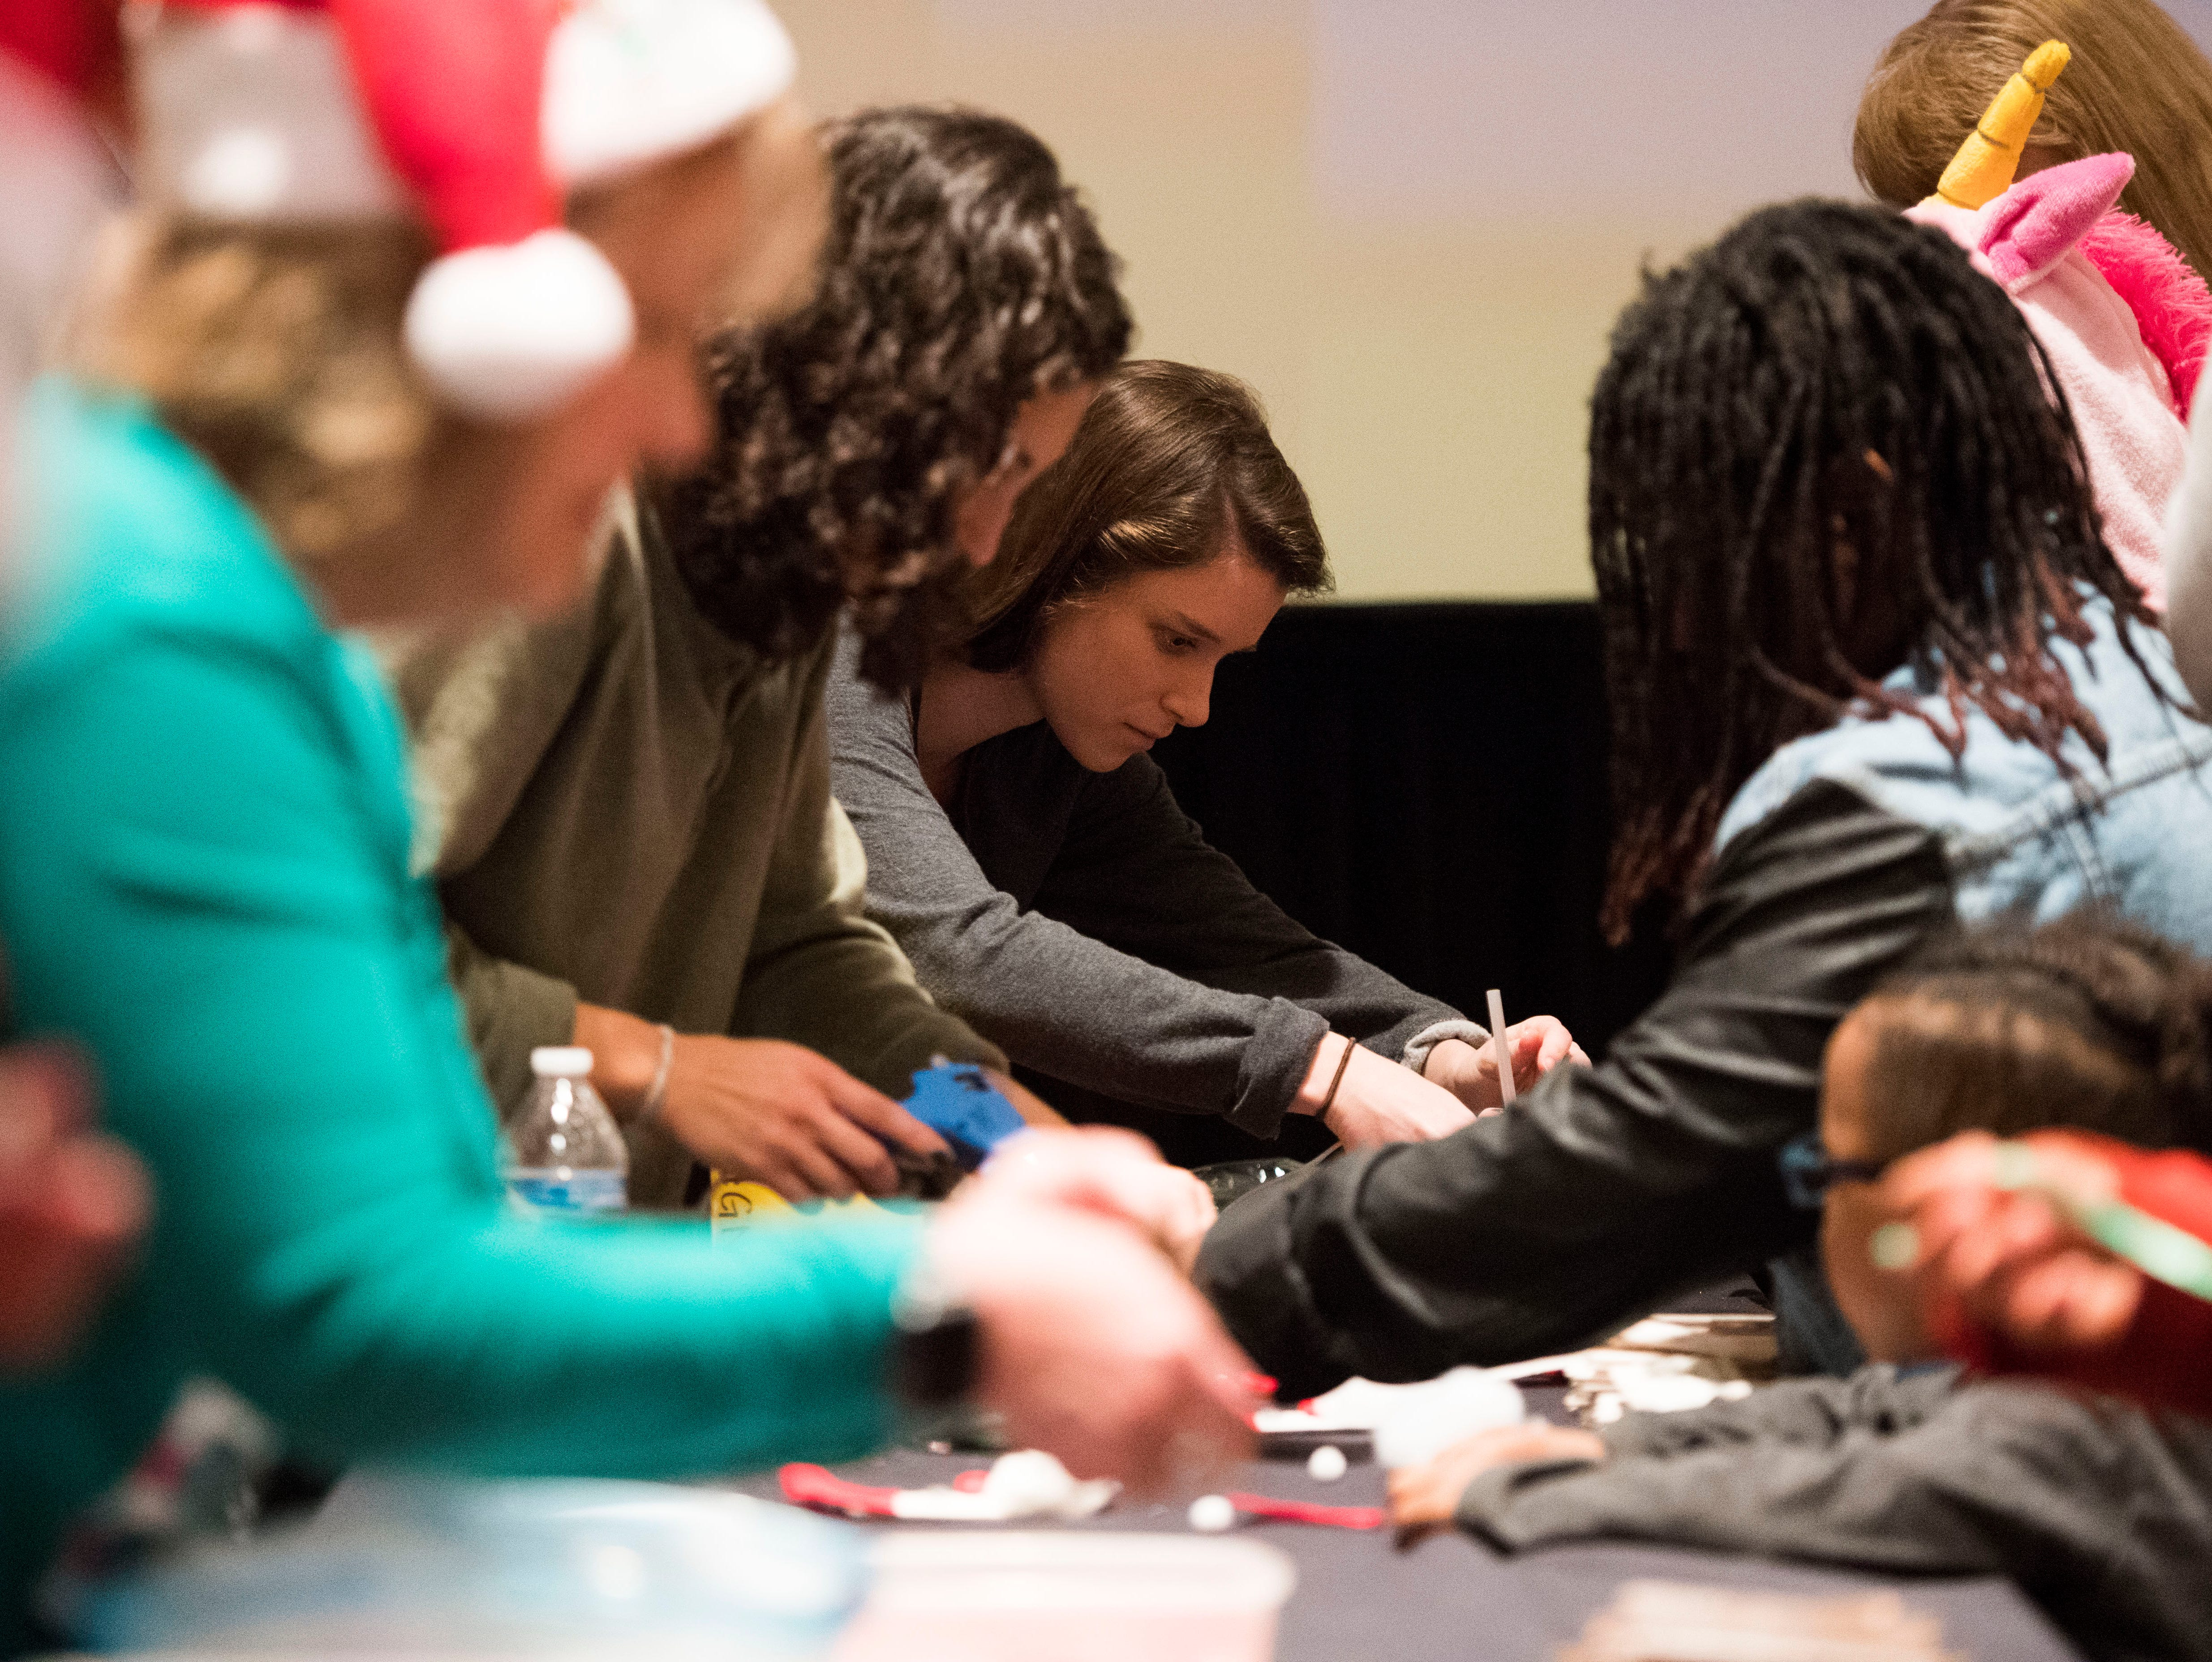 Big Brothers Big Sisters participants craft together at the Crowne Plaza for their annual holiday party Saturday, Dec. 1, 2018. Nearly 300 mentors, mentees and family members were in attendance.